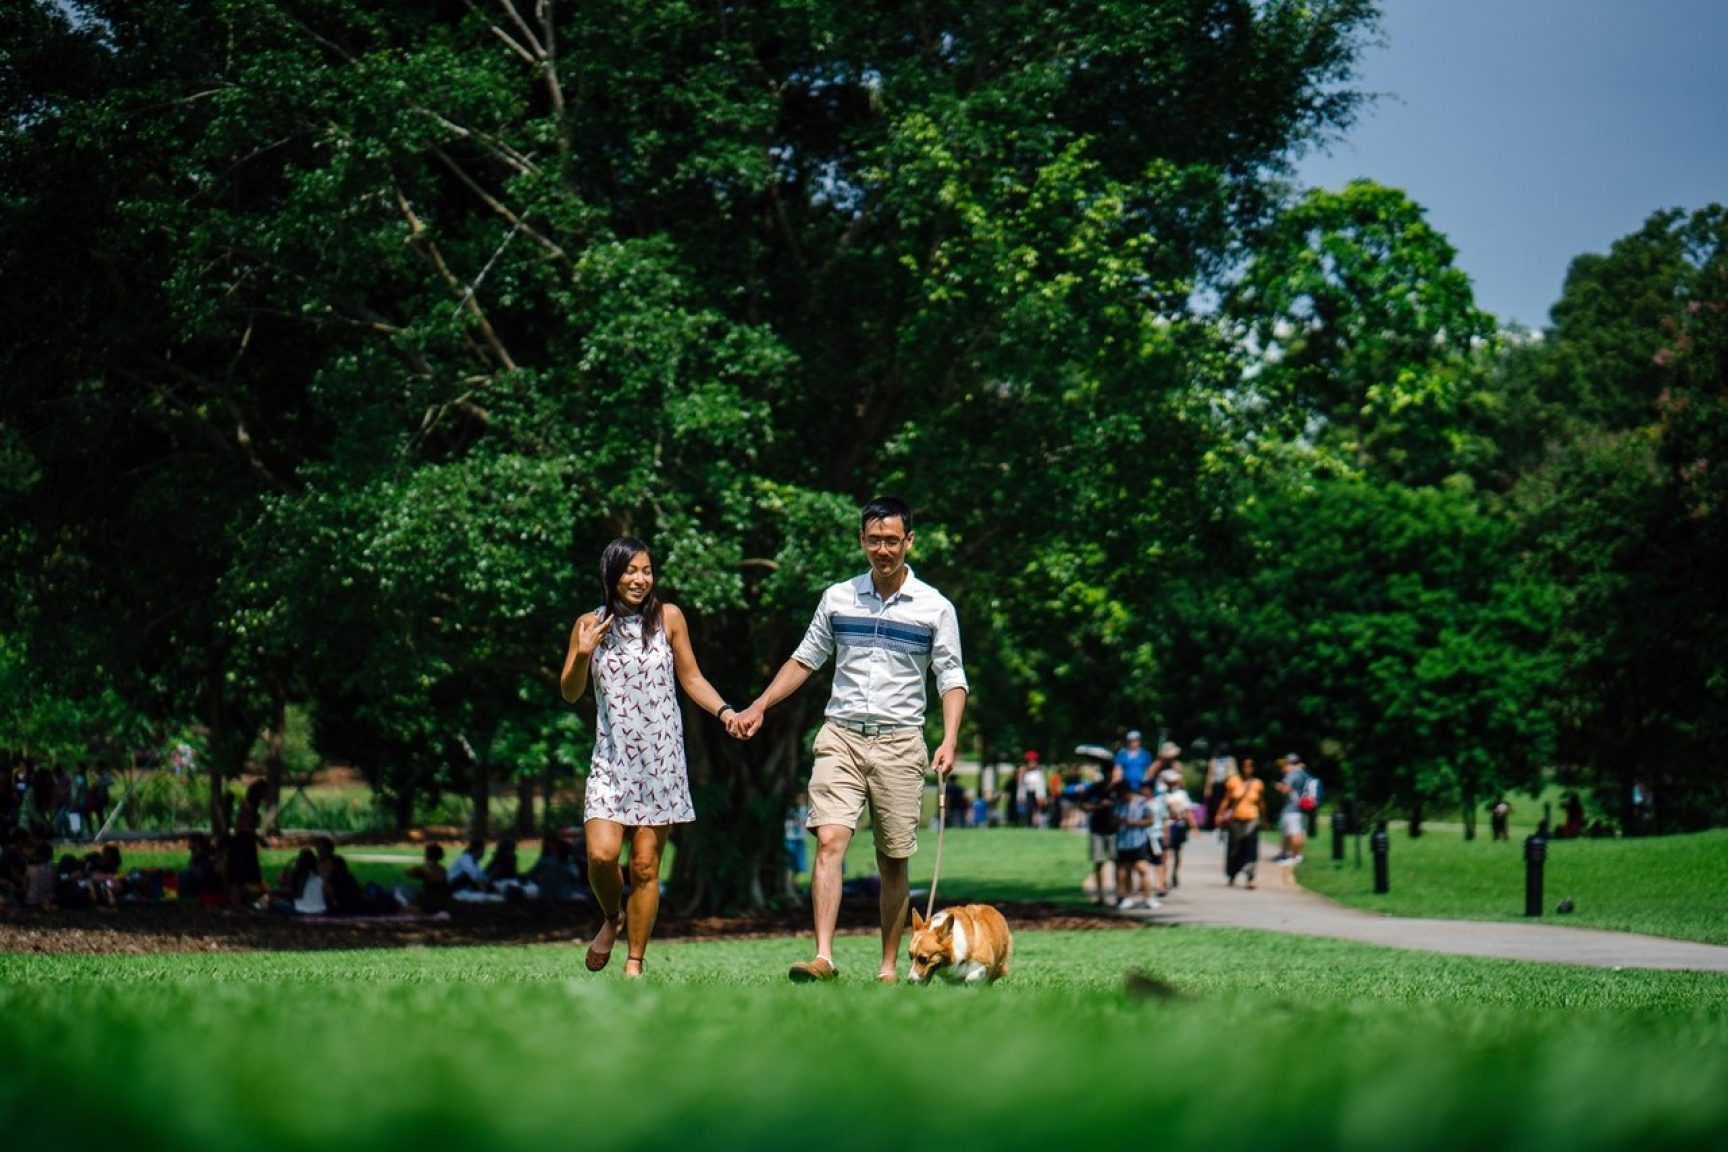 A couple is walking their dog through a park. It's sunny and the grass and trees are very green.